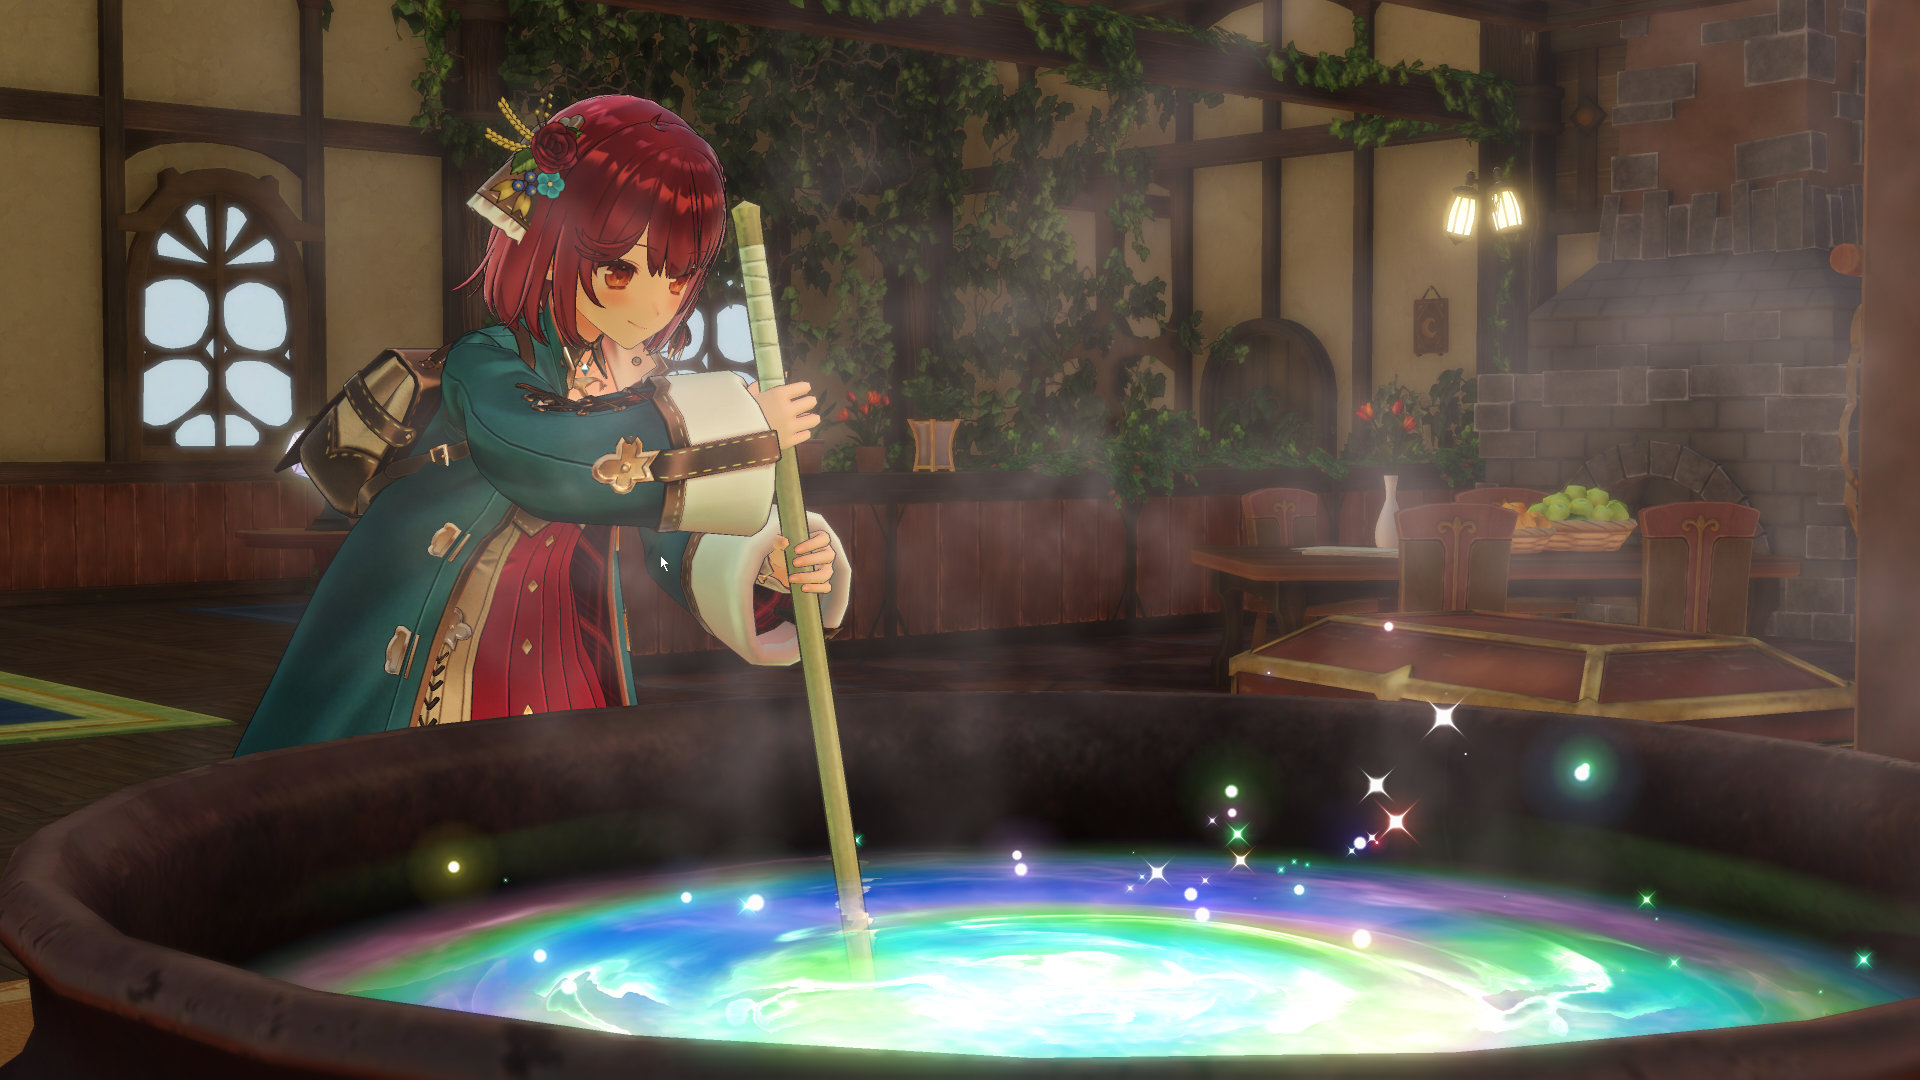 Atelier Sophie 2 screenshot of auburn-haired Sophie brewing something in her large glowing alchemy cauldron.